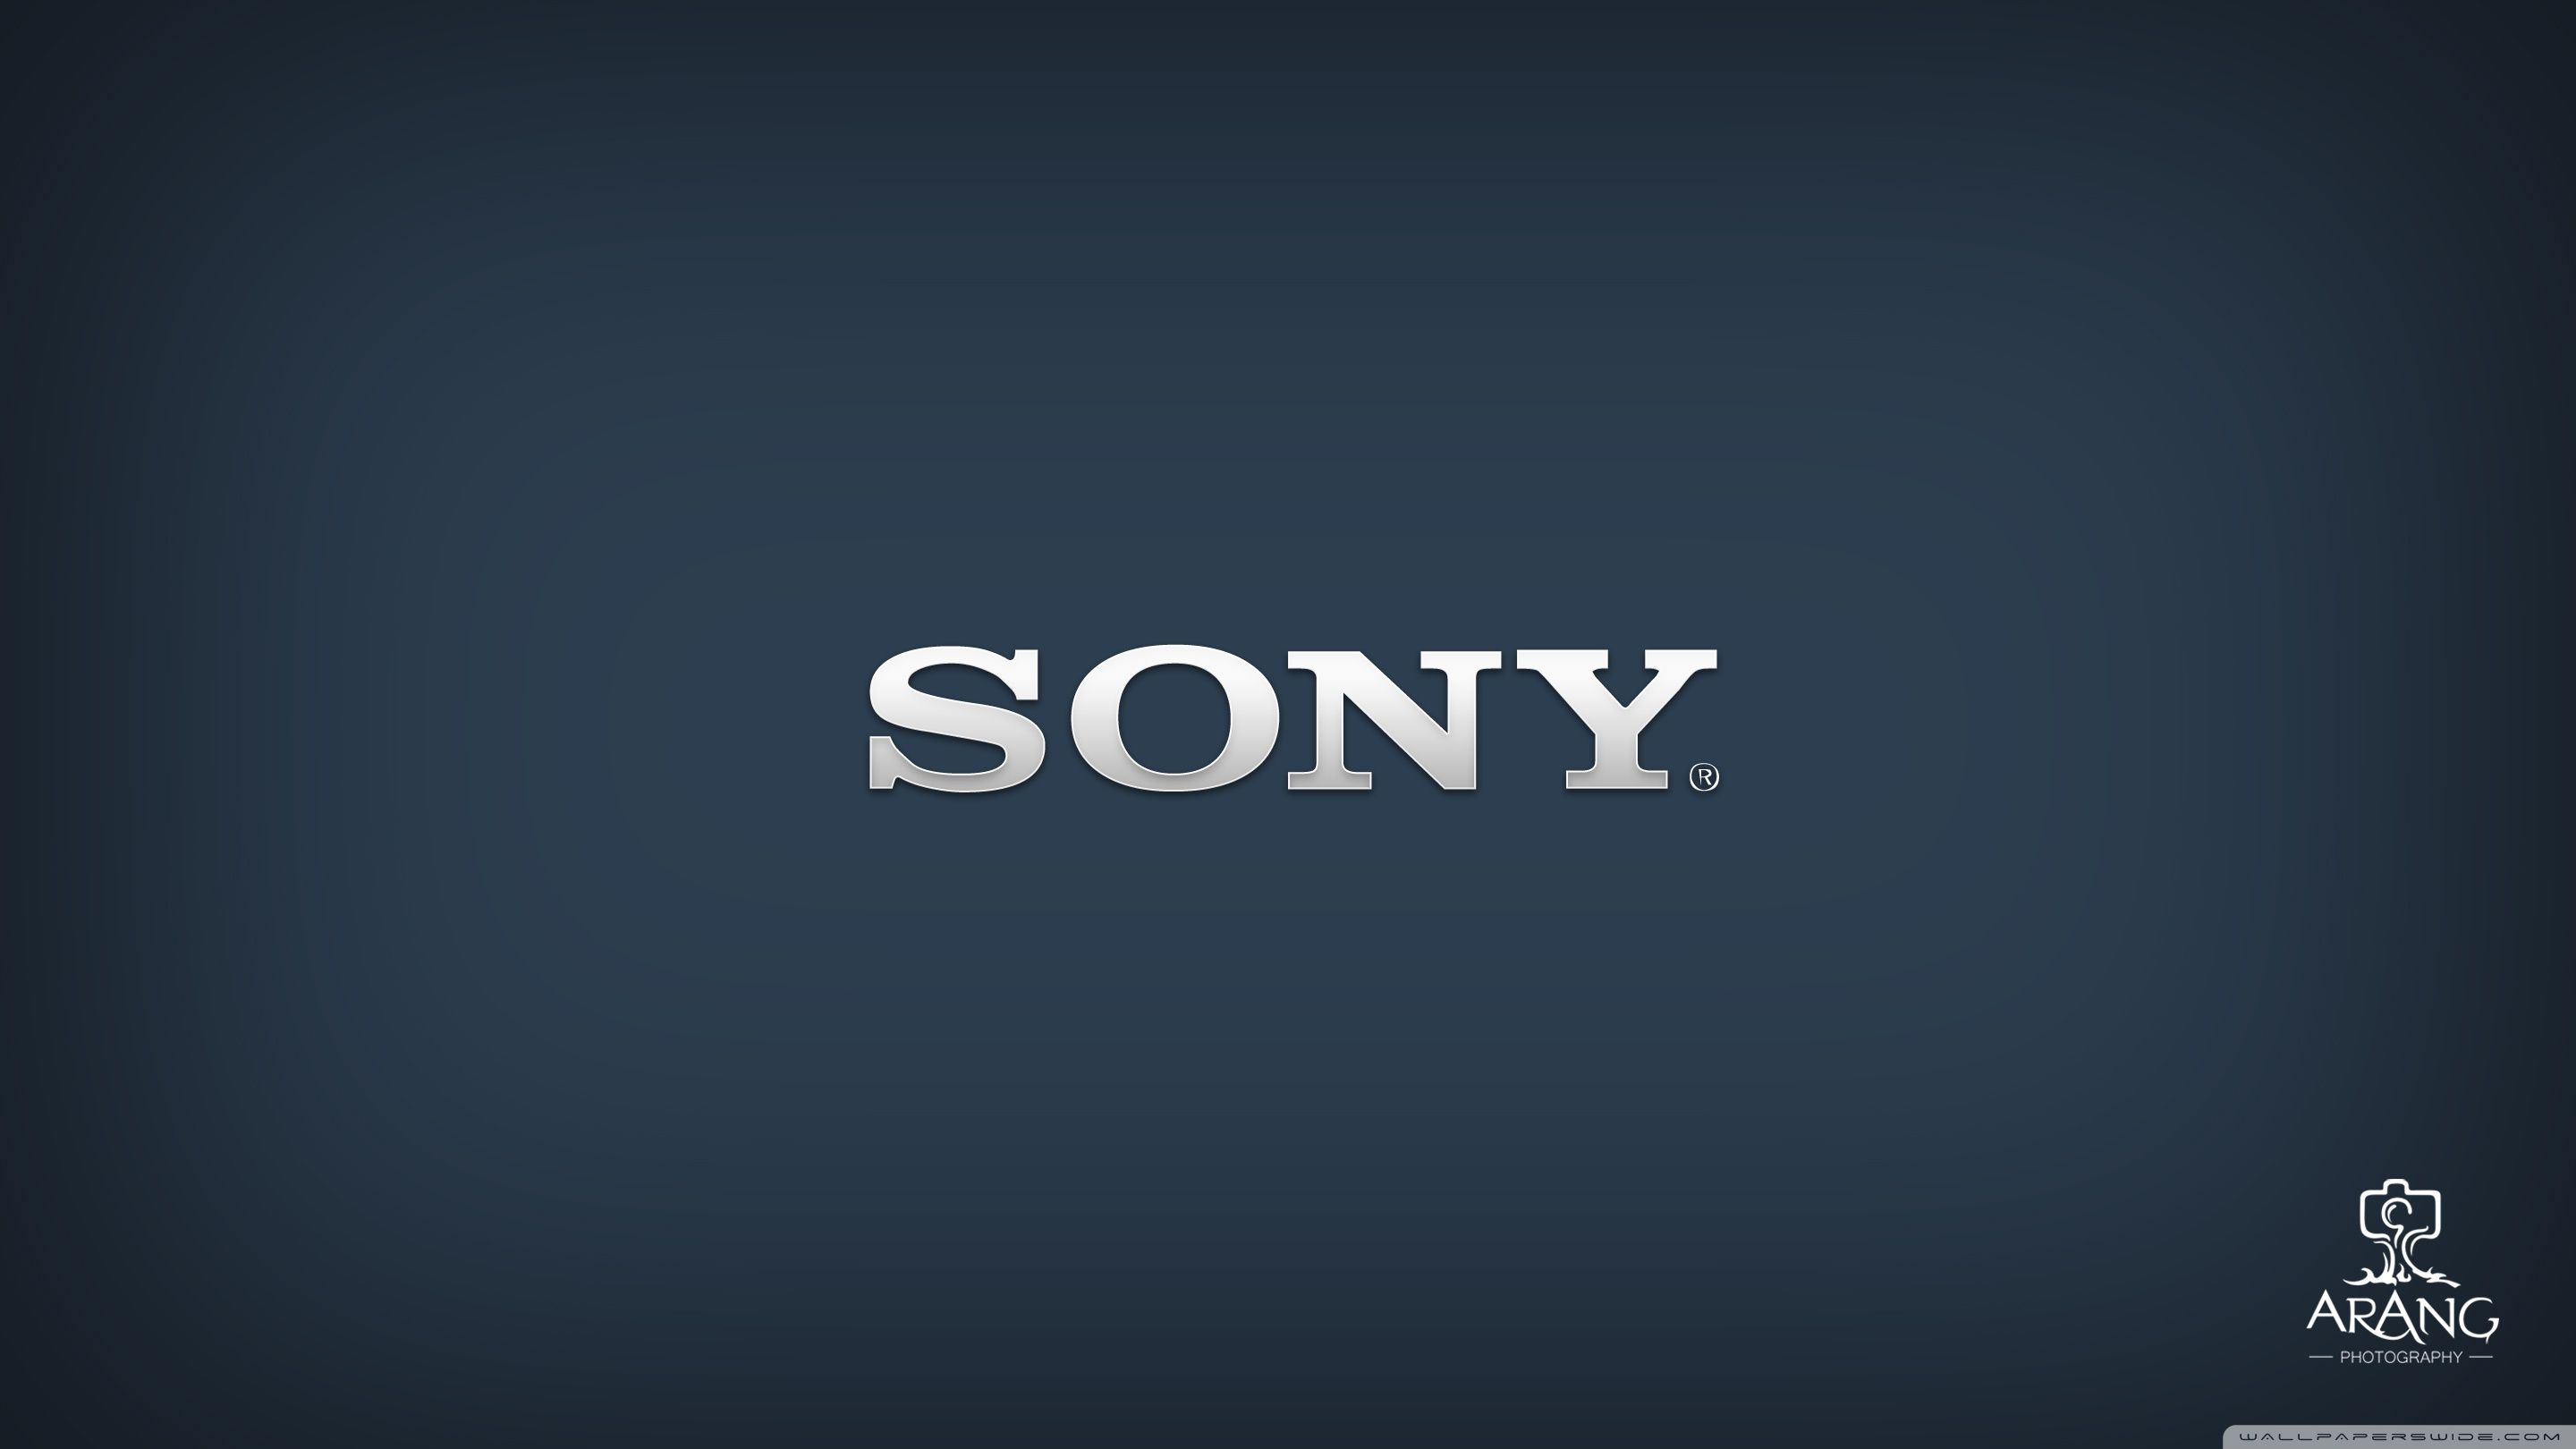 Sony Headphones 4k Hd Desktop Wallpaper For 4k Ultra Hd Tv: Top Free Sony Logo Backgrounds